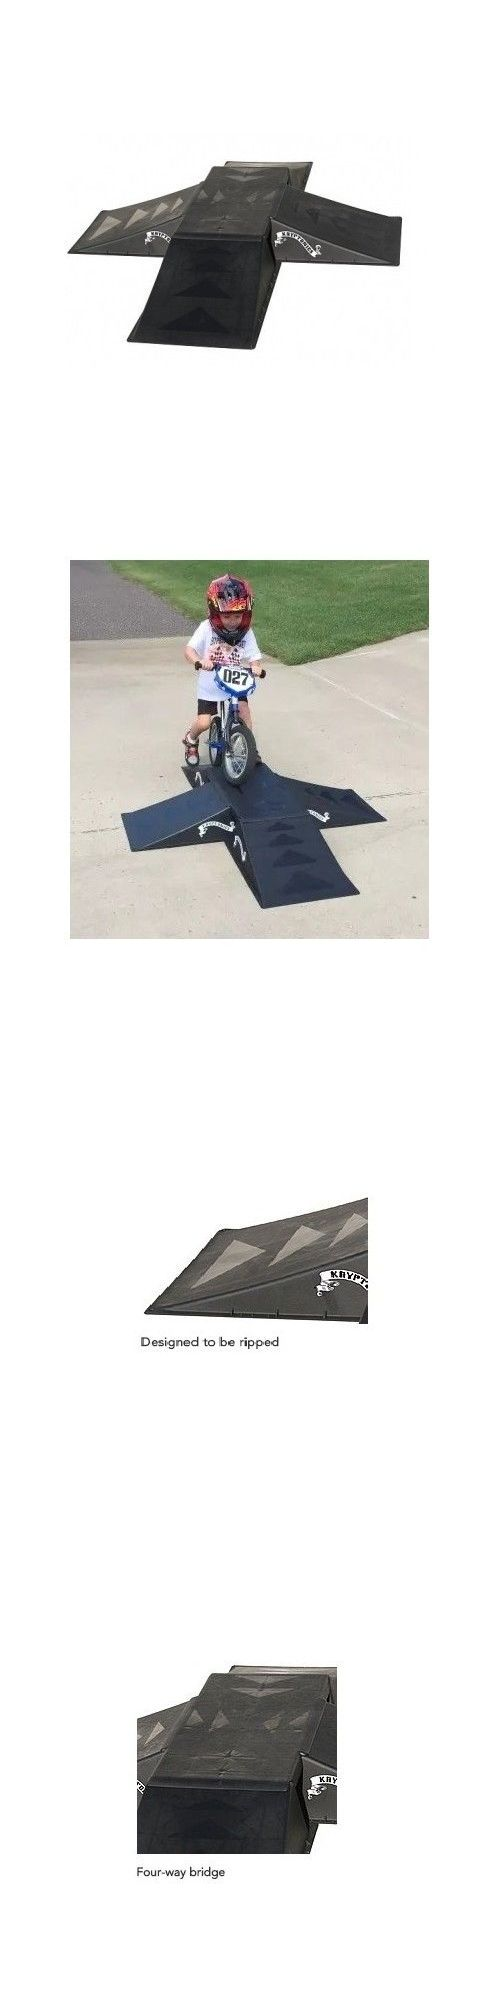 Ramps and Rails 91565: Skateboard Ramps For Bmx Bikes Kids Beginners Tricks Jump Inline Skate Portable BUY IT NOW ONLY: $75.19